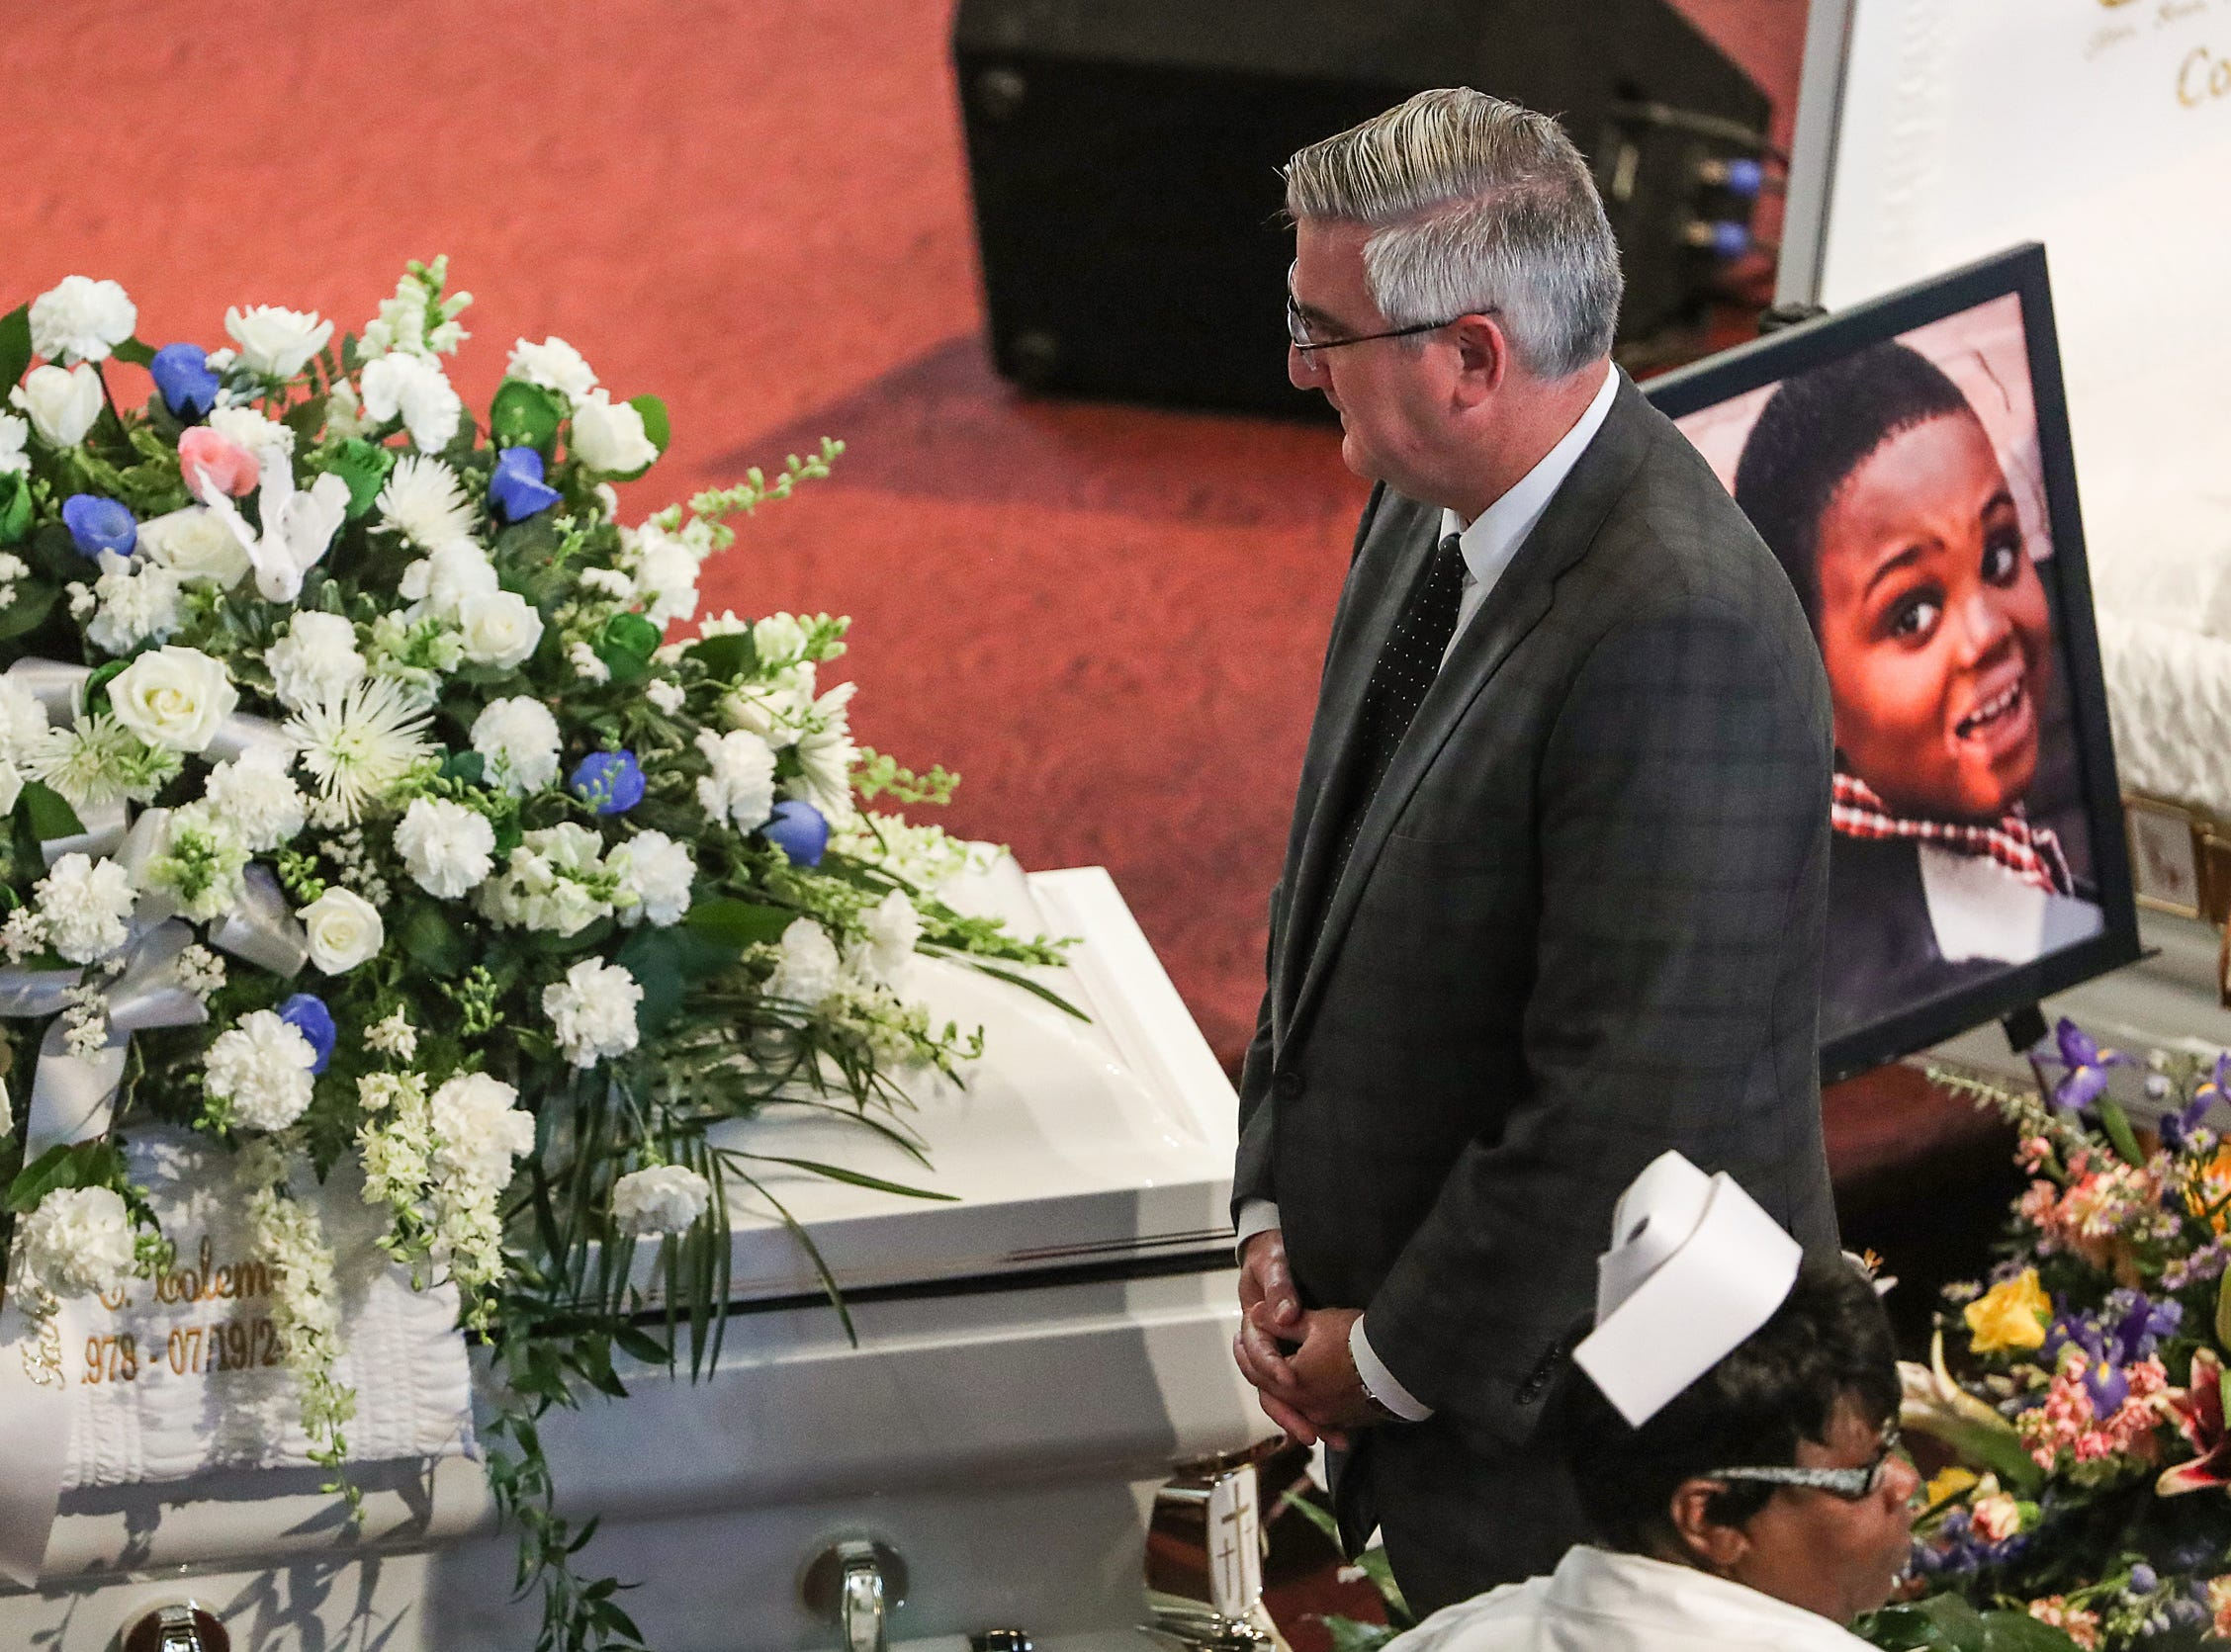 Indiana Gov. Eric Holcomb attends the homegoing service of Glenn Coleman, 40, Reece, 9, Evan, 7, and Arya, 1, at Grace Apostolic Church on Friday, July 27, 2018. Seventeen people were killed in the duck boat incident in Branson, Missouri, nine of them were members of the Coleman family.